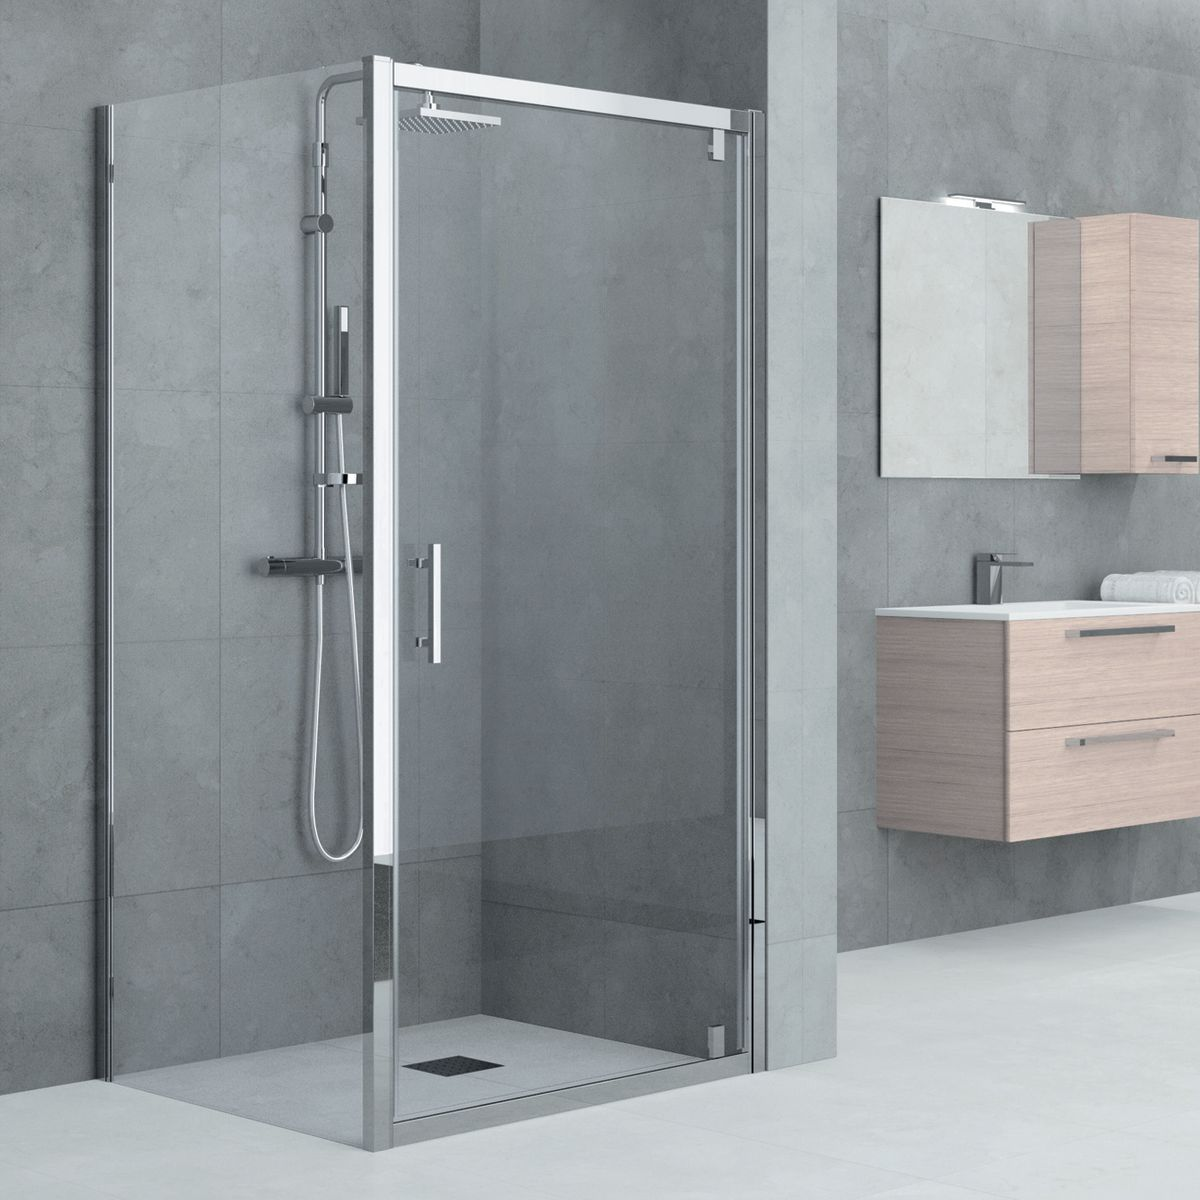 Vasca e doccia combinate beautiful vasca relax with vasca for Porta doccia leroy merlin